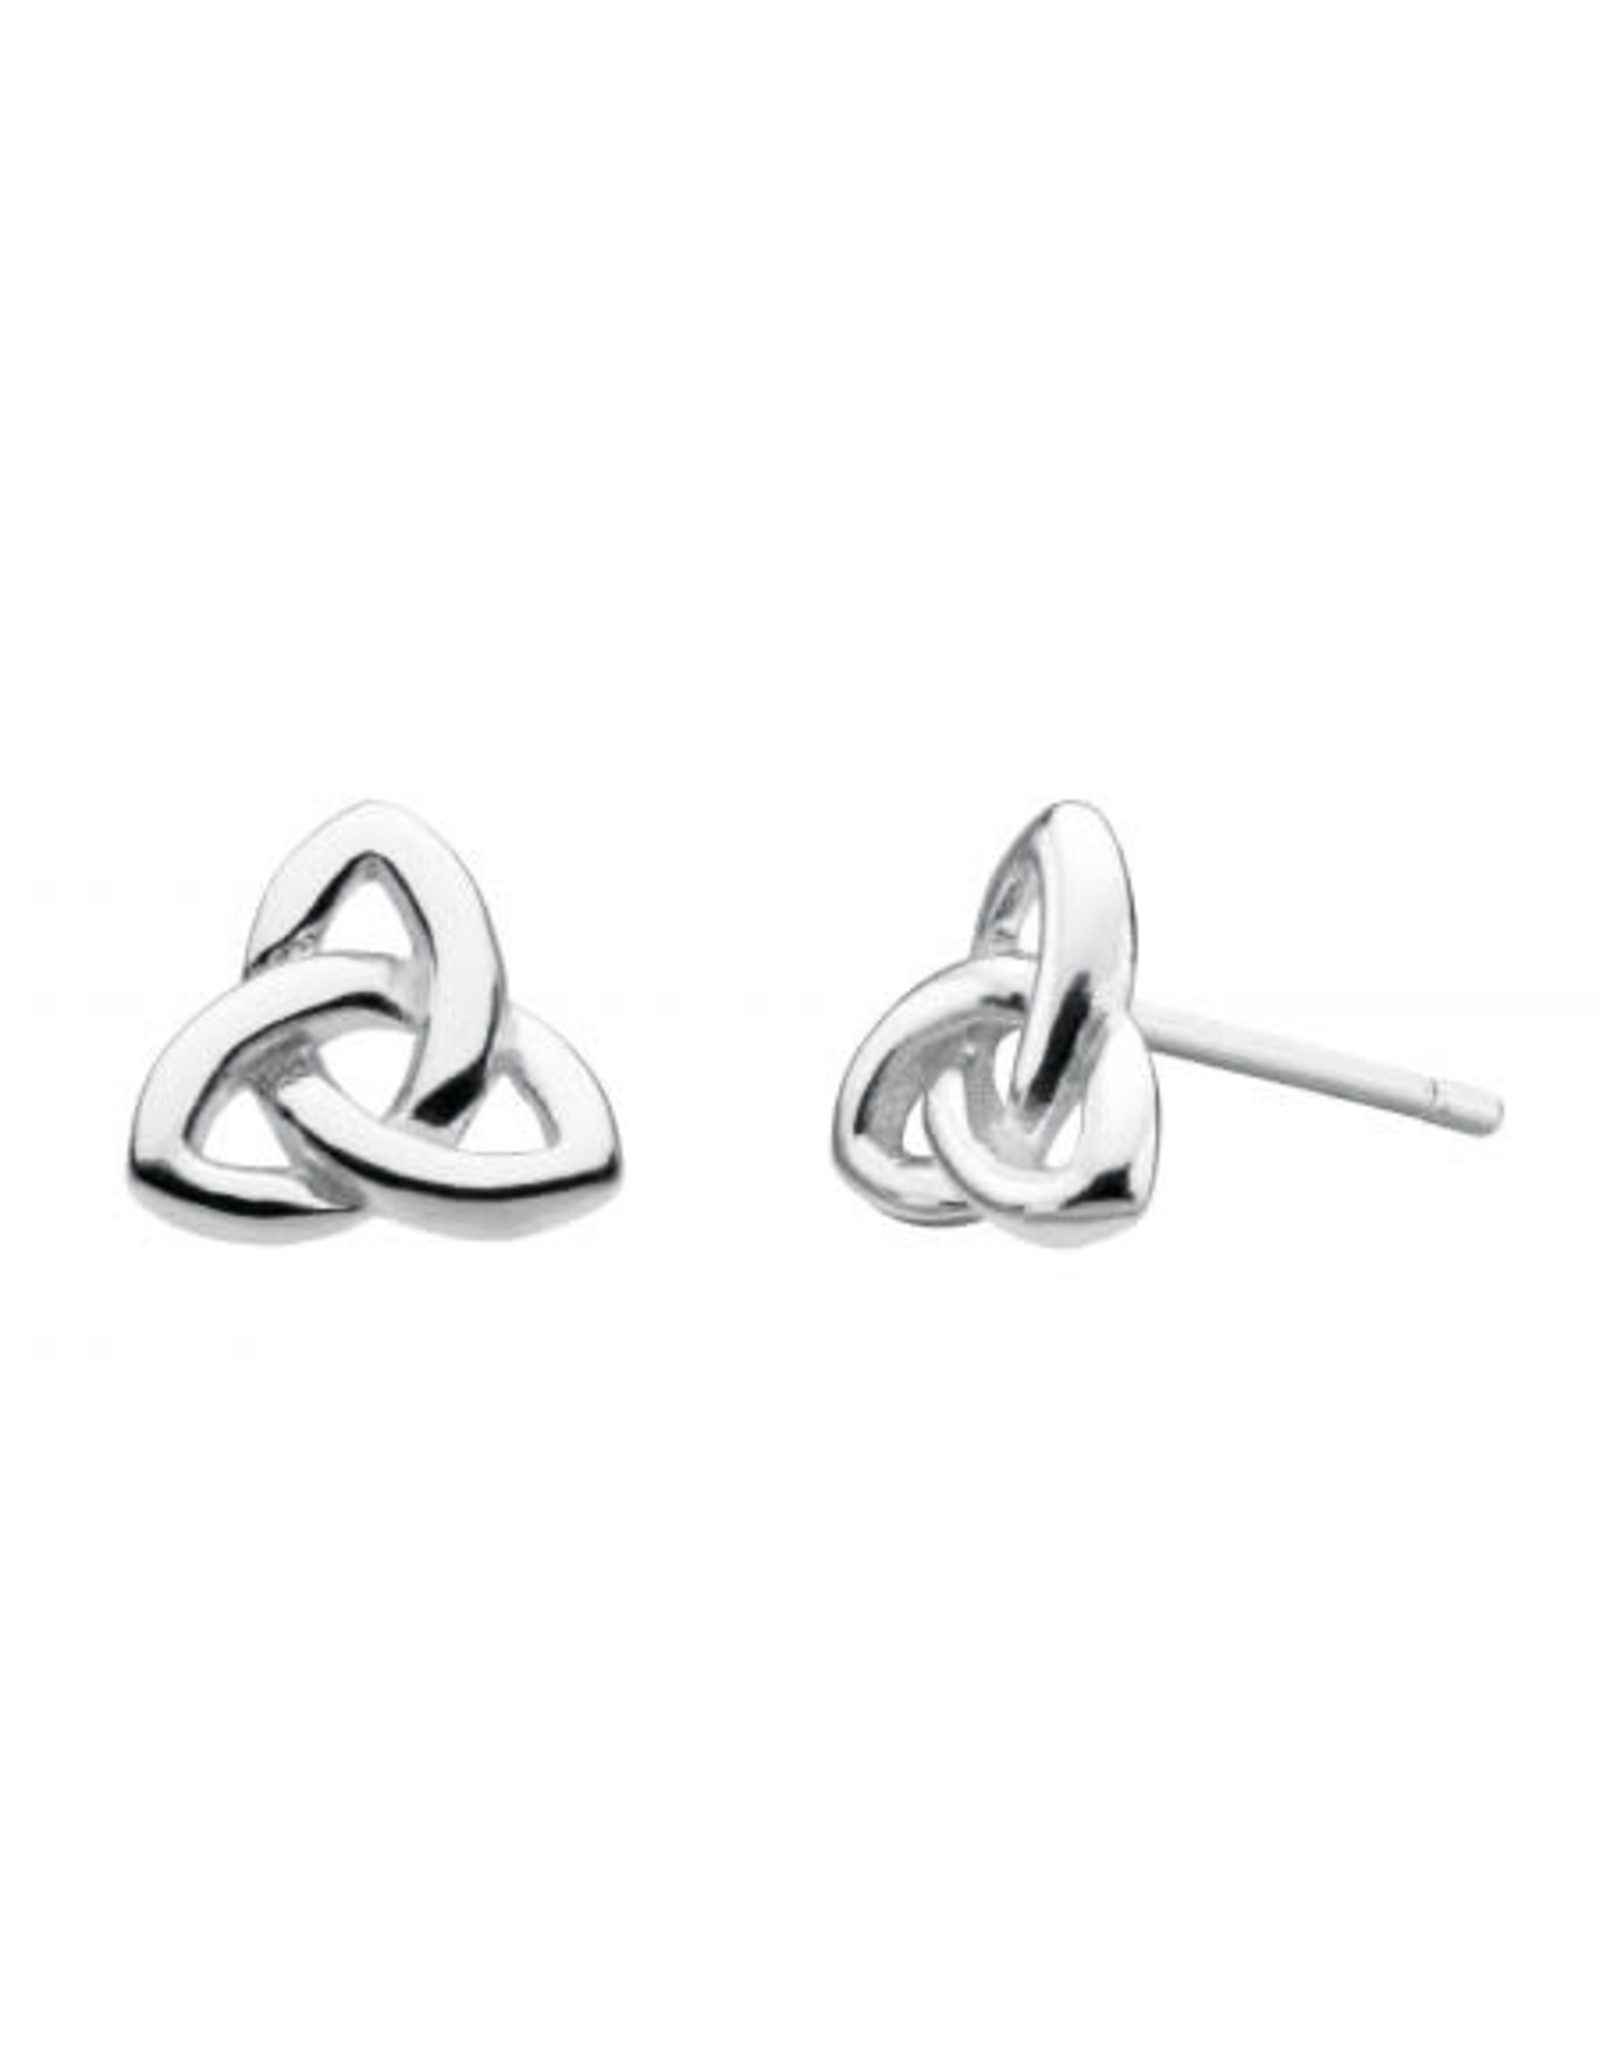 Kit Heath TRINITY KNOT STUD EARRING